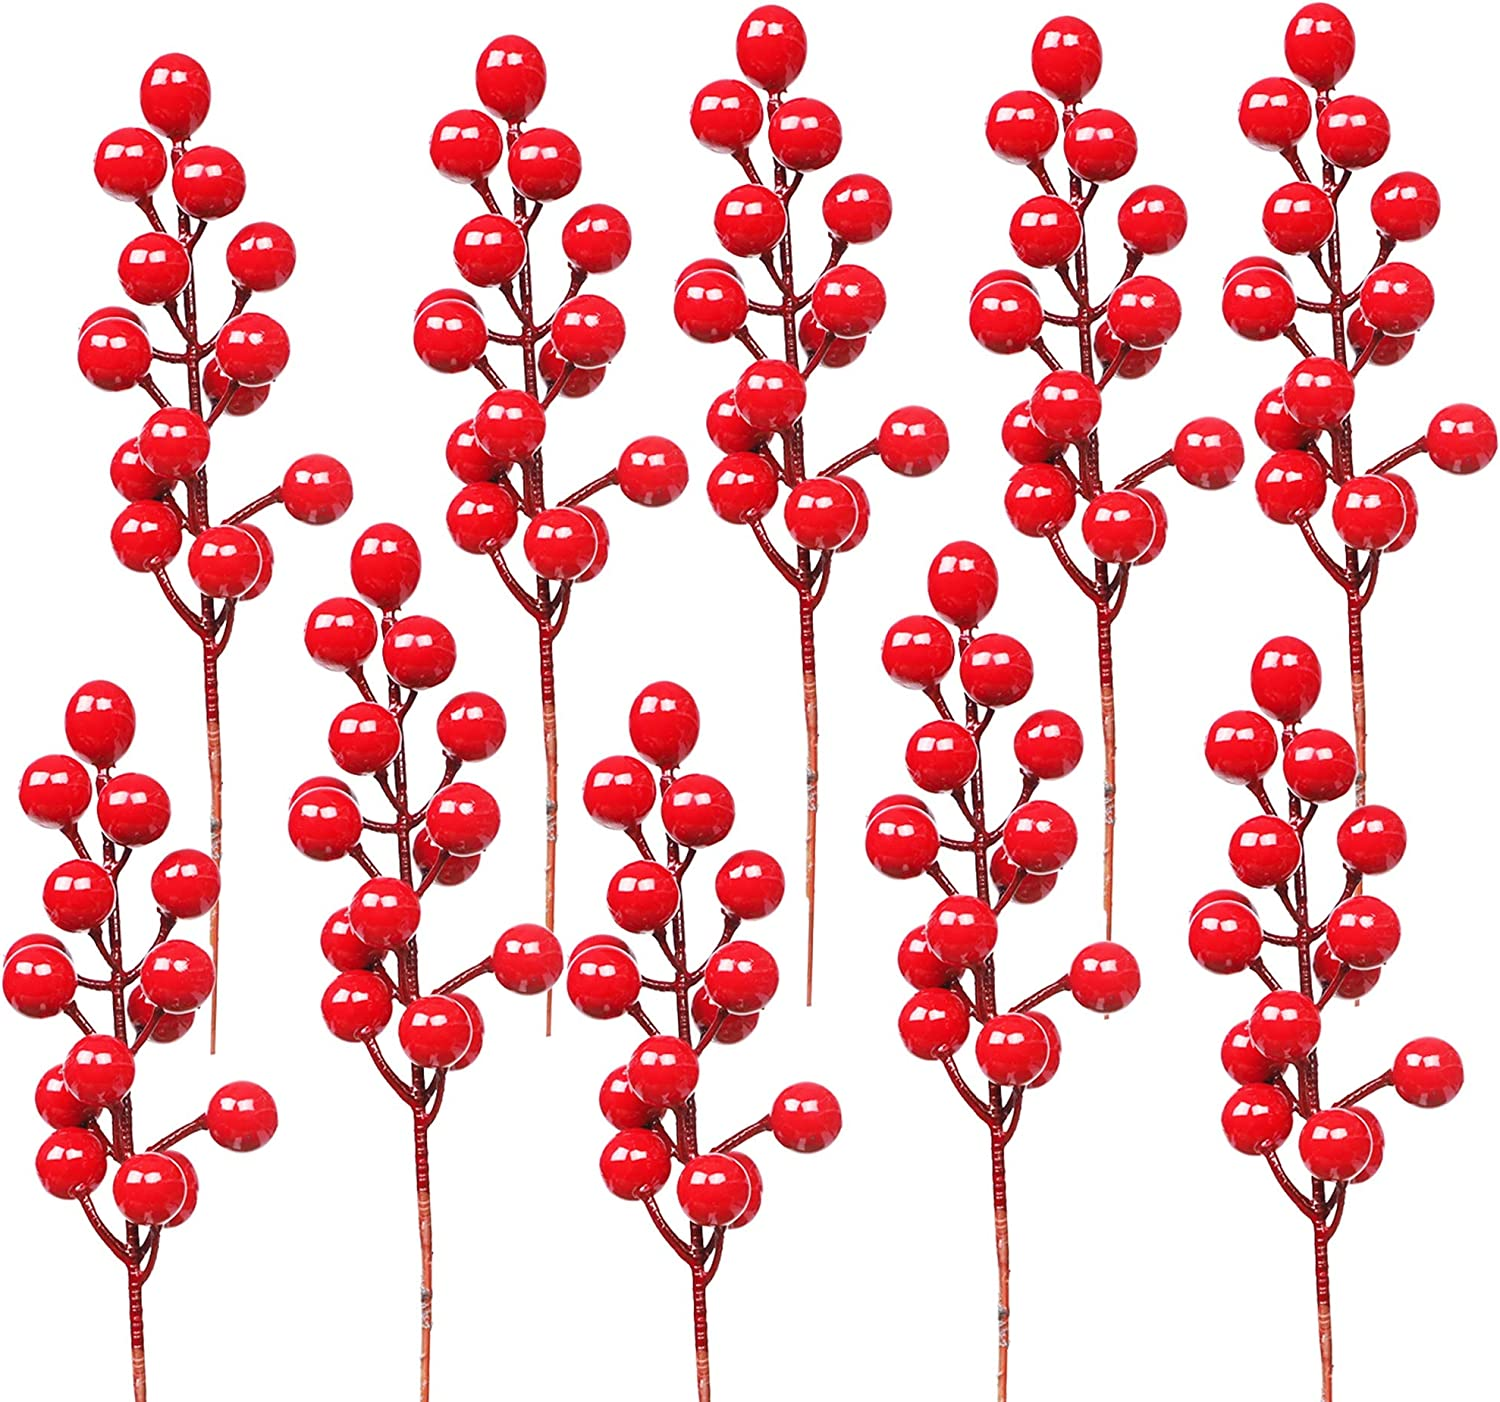 DR.DUDU 24 Pack Christmas Red Berries Stems for Christmas Tree Decoration, Artificial Christmas Red Berry for DIY Crafts Wreath Garland Christmas Ornaments Decor